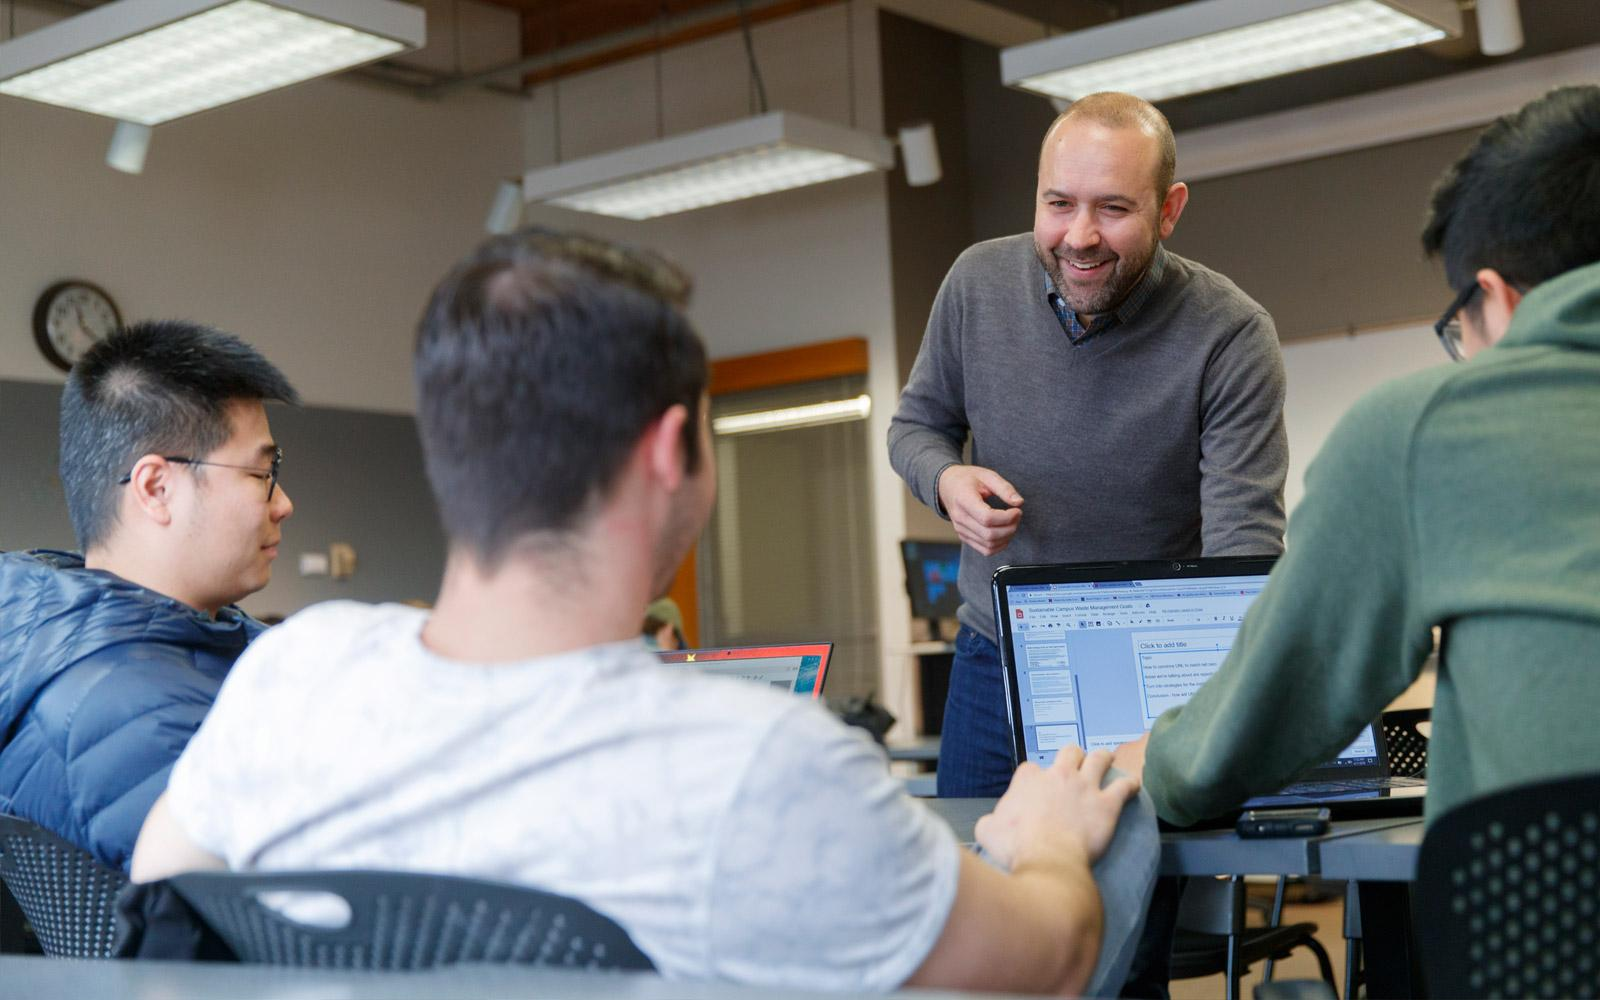 Faculty talks to students working on laptops